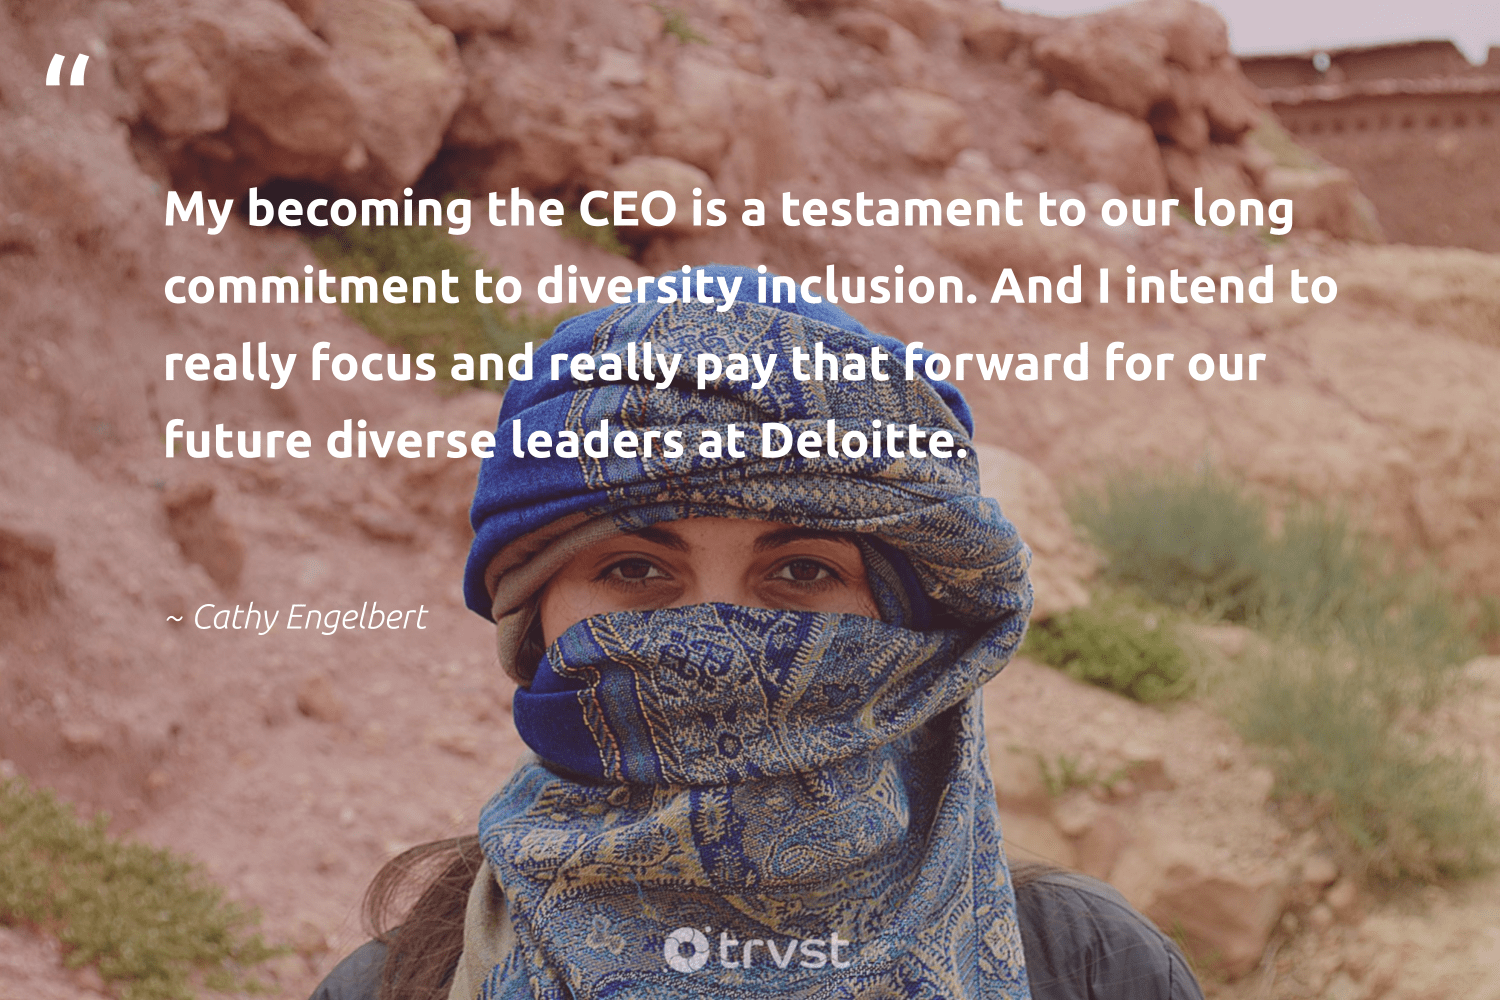 """My becoming the CEO is a testament to our long commitment to diversity inclusion. And I intend to really focus and really pay that forward for our future diverse leaders at Deloitte.""  - Cathy Engelbert #trvst #quotes #diversity #inclusion #focus #discrimination #representationmatters #giveback #weareallone #dotherightthing #bethechange #socialchange"